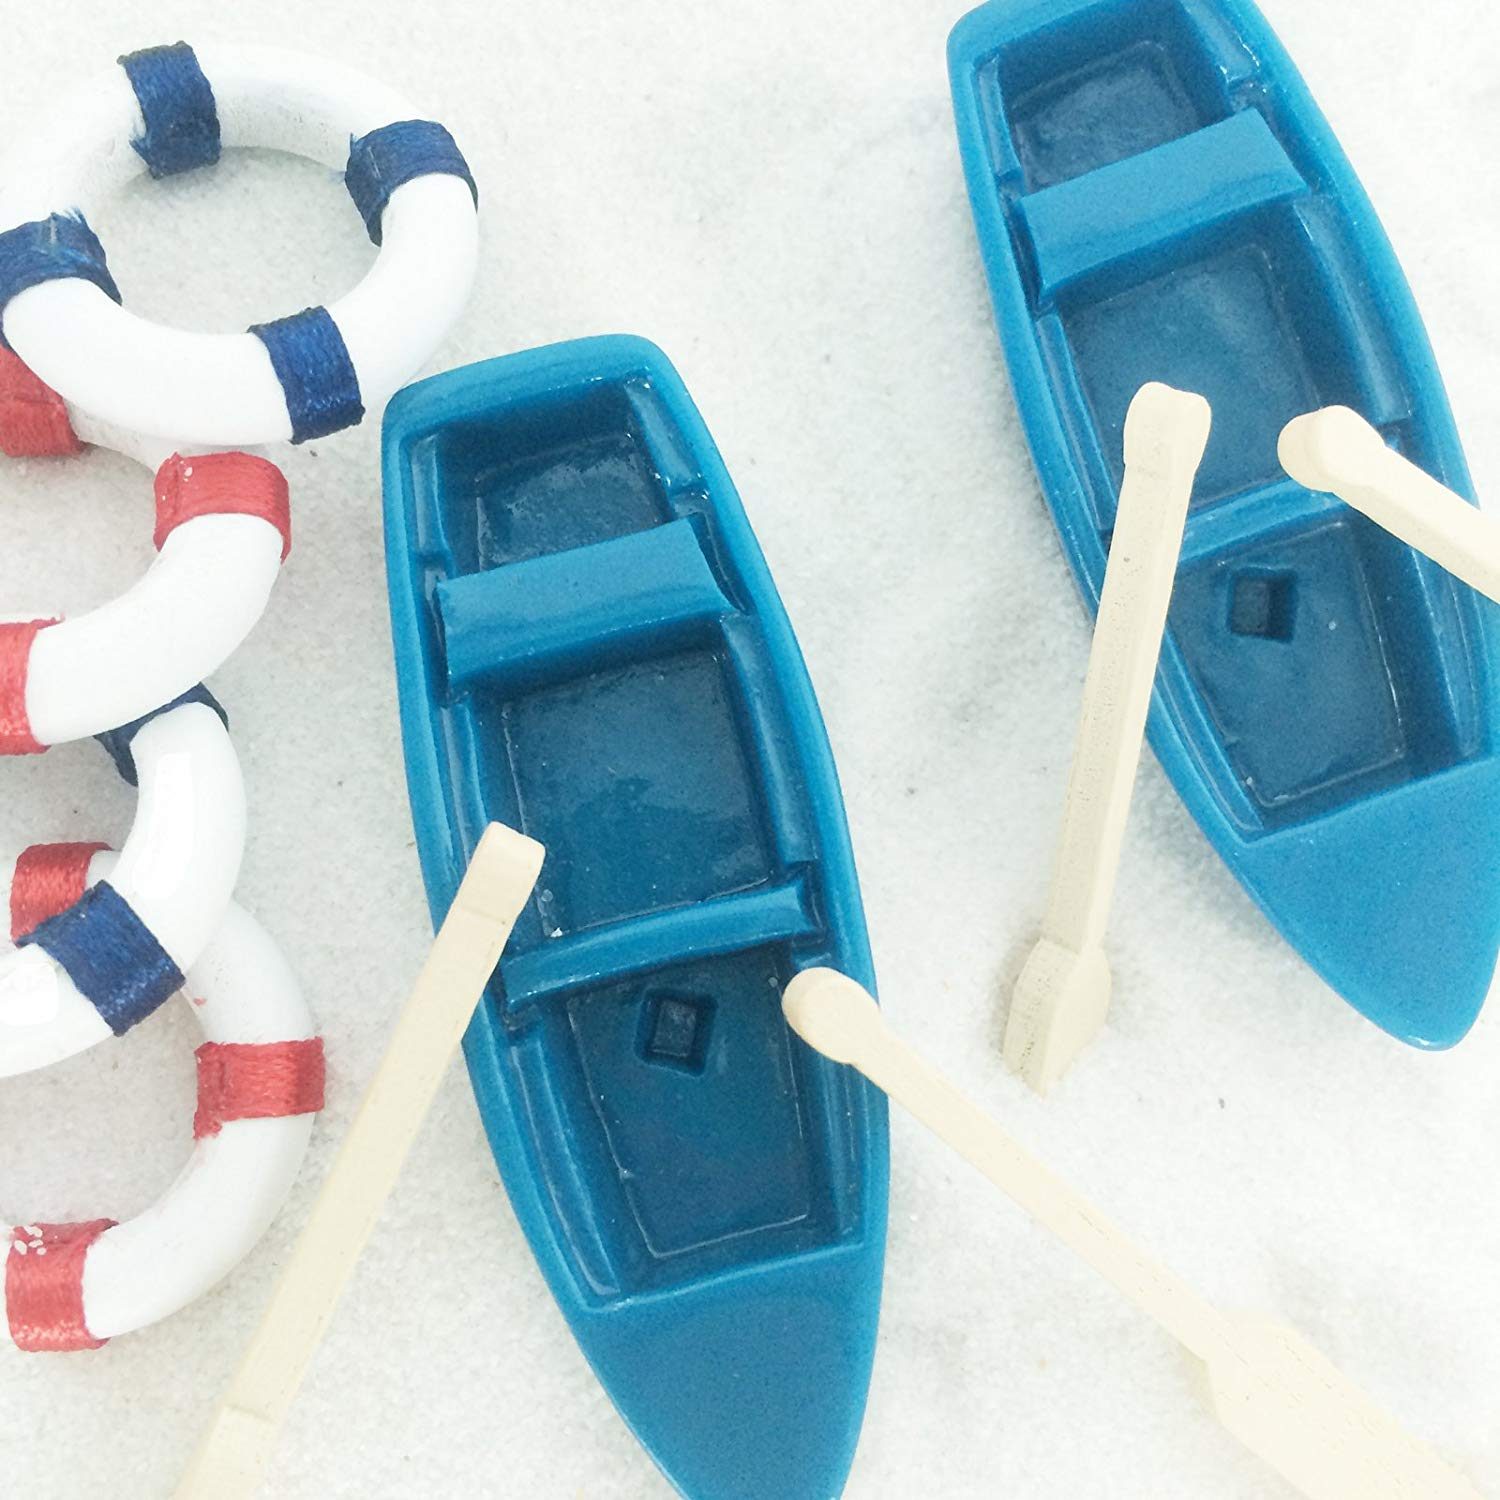 Beach Miniature Set 2 Vintage Fishing Boat with Oars and 4 Boat Life Rings